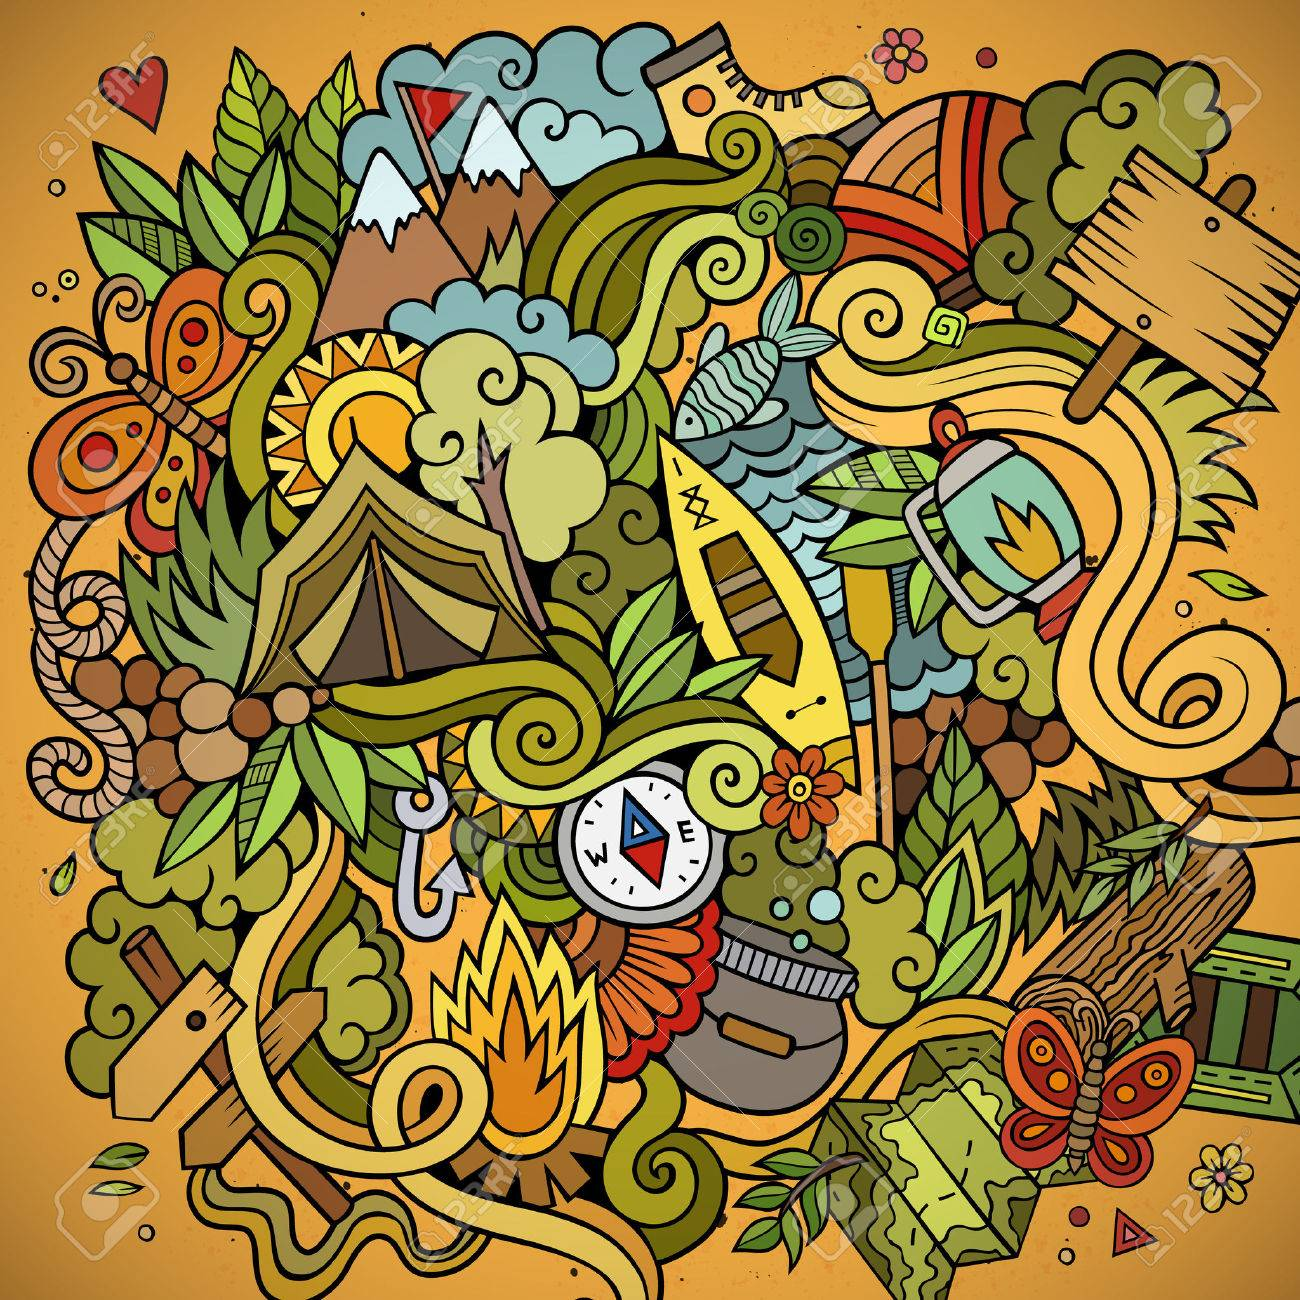 Cartoon vector doodles hand drawn camping background - 41390342